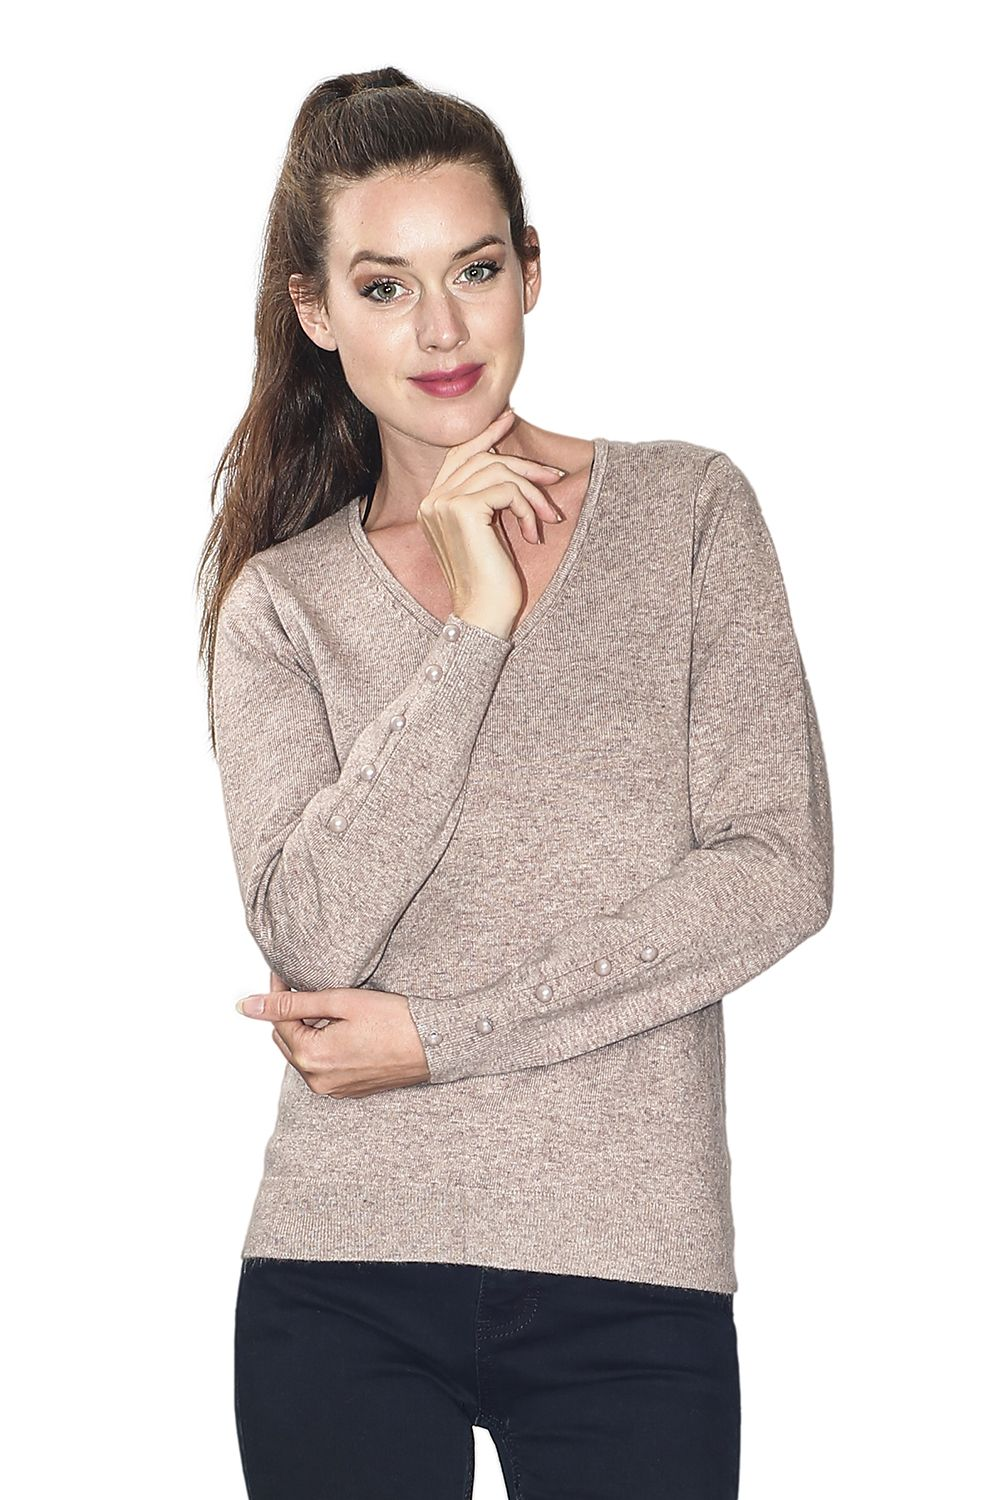 Assuili V-neck Sweater with Buttoned Sleeves in Beige